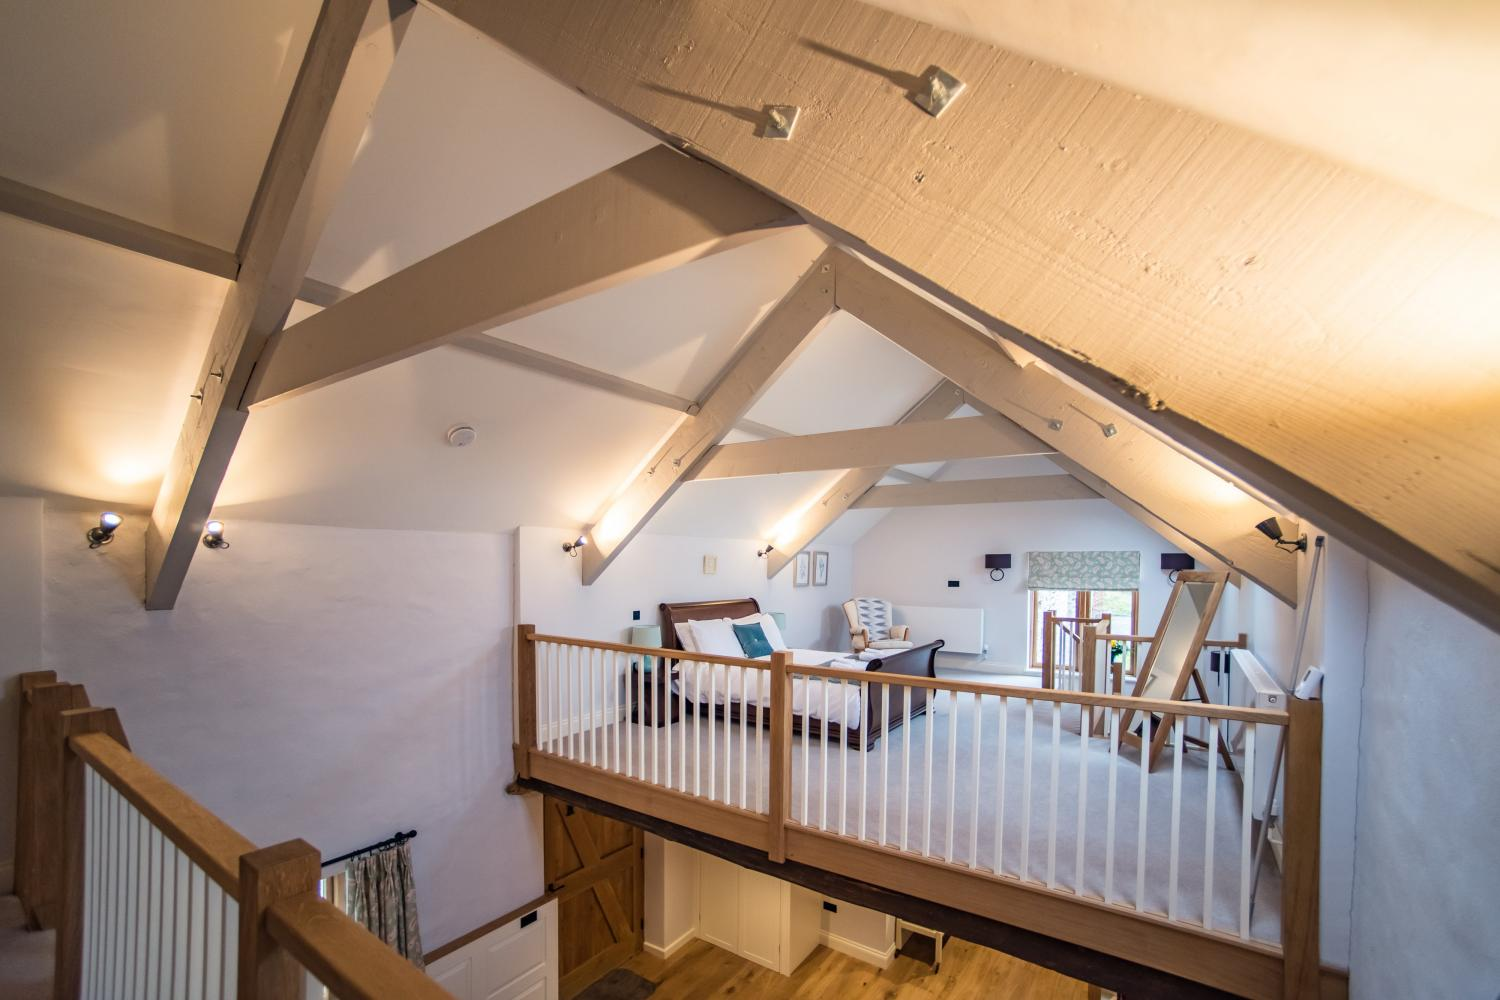 The Cow Shed mezzanine floor